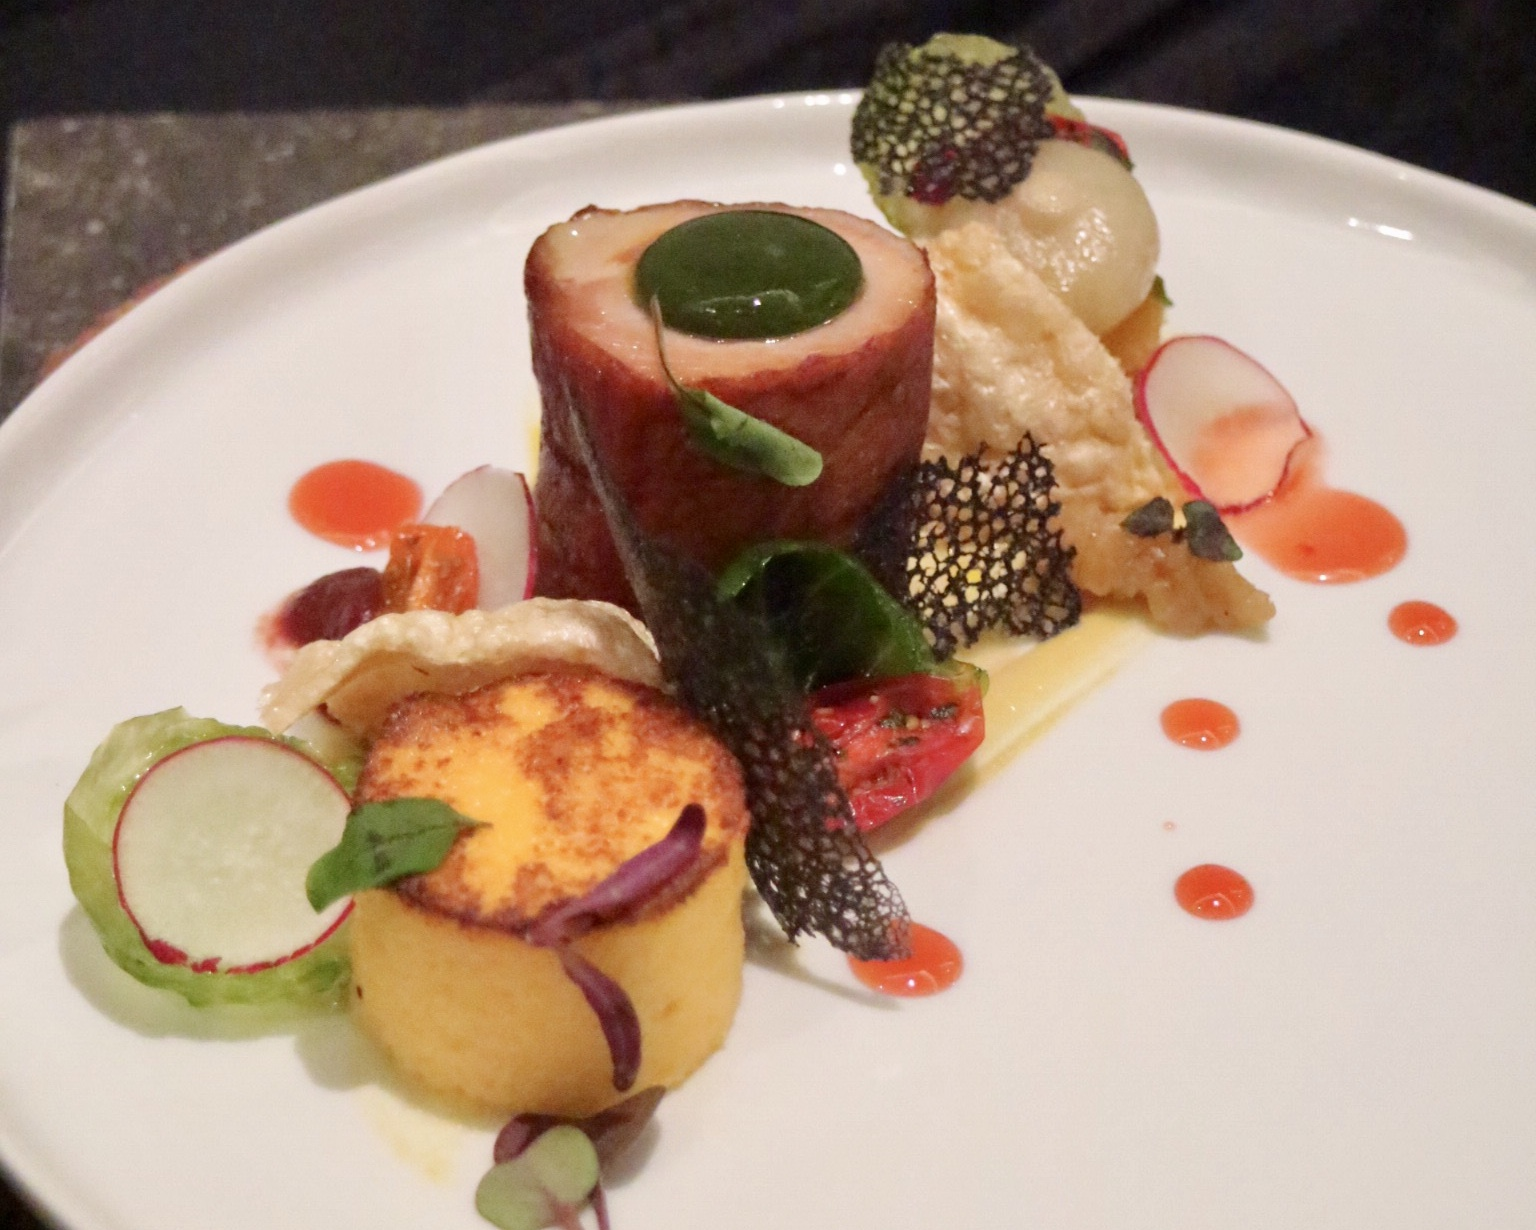 Beet cured smoked sous vide pork loin